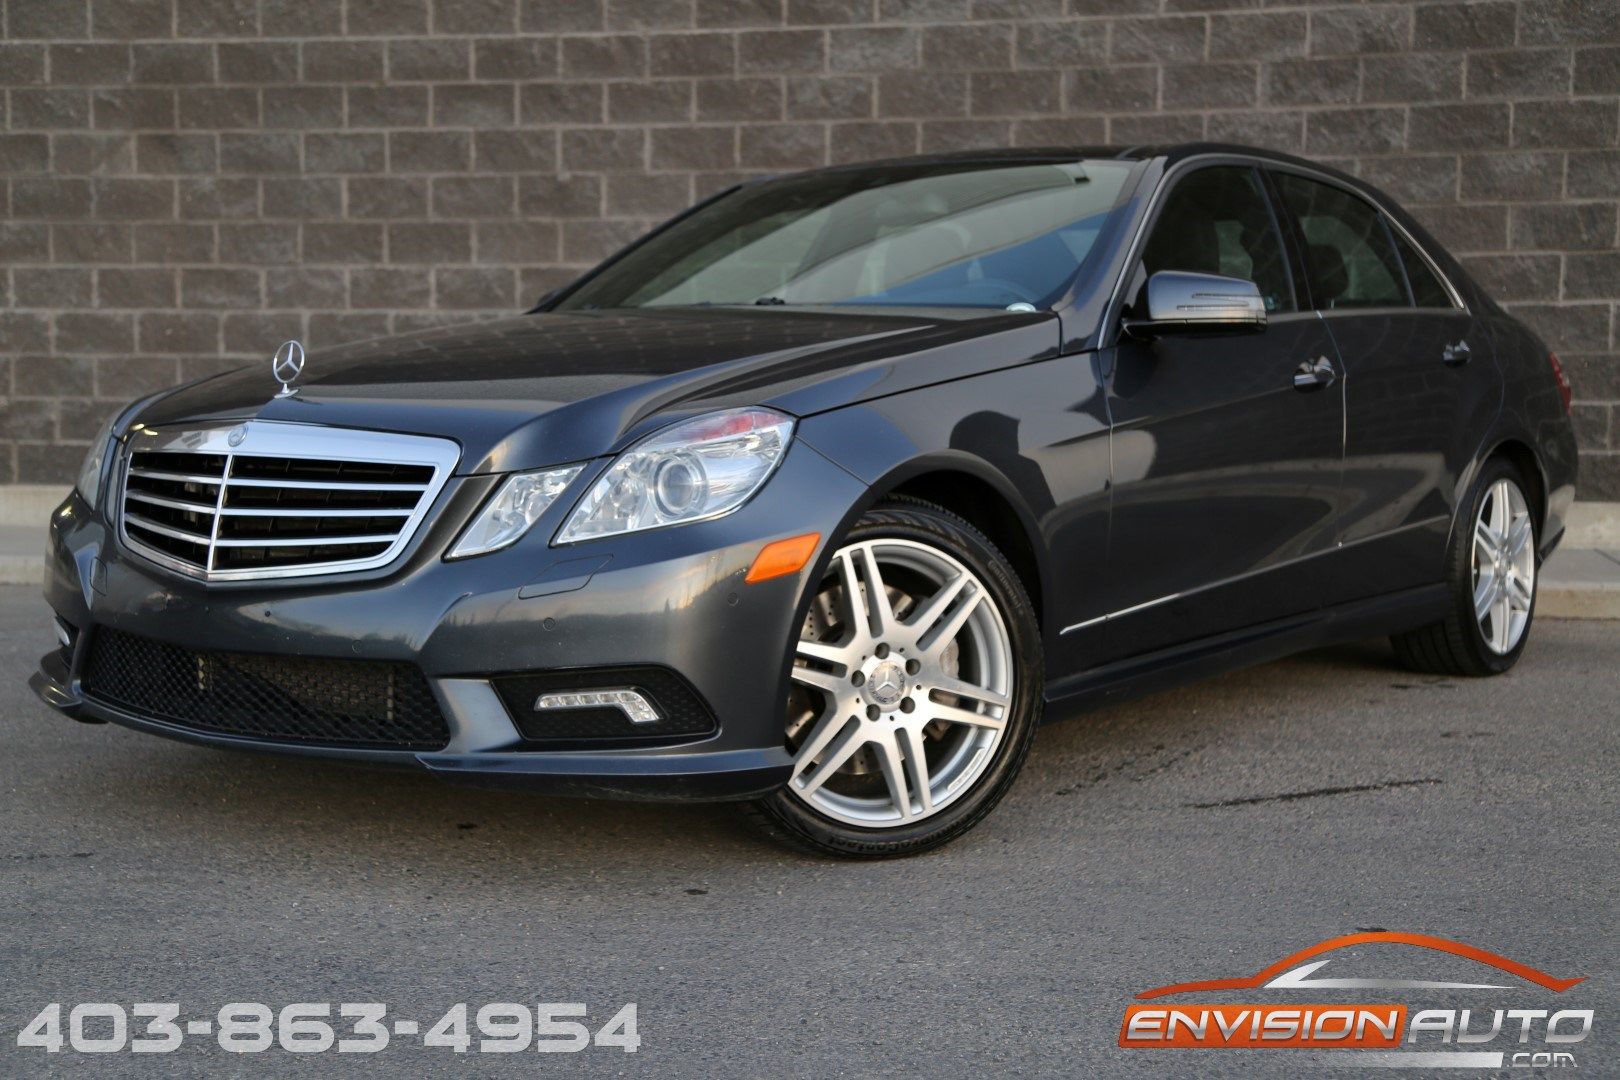 2010 mercedes benz e550 4matic spotless history envision. Black Bedroom Furniture Sets. Home Design Ideas